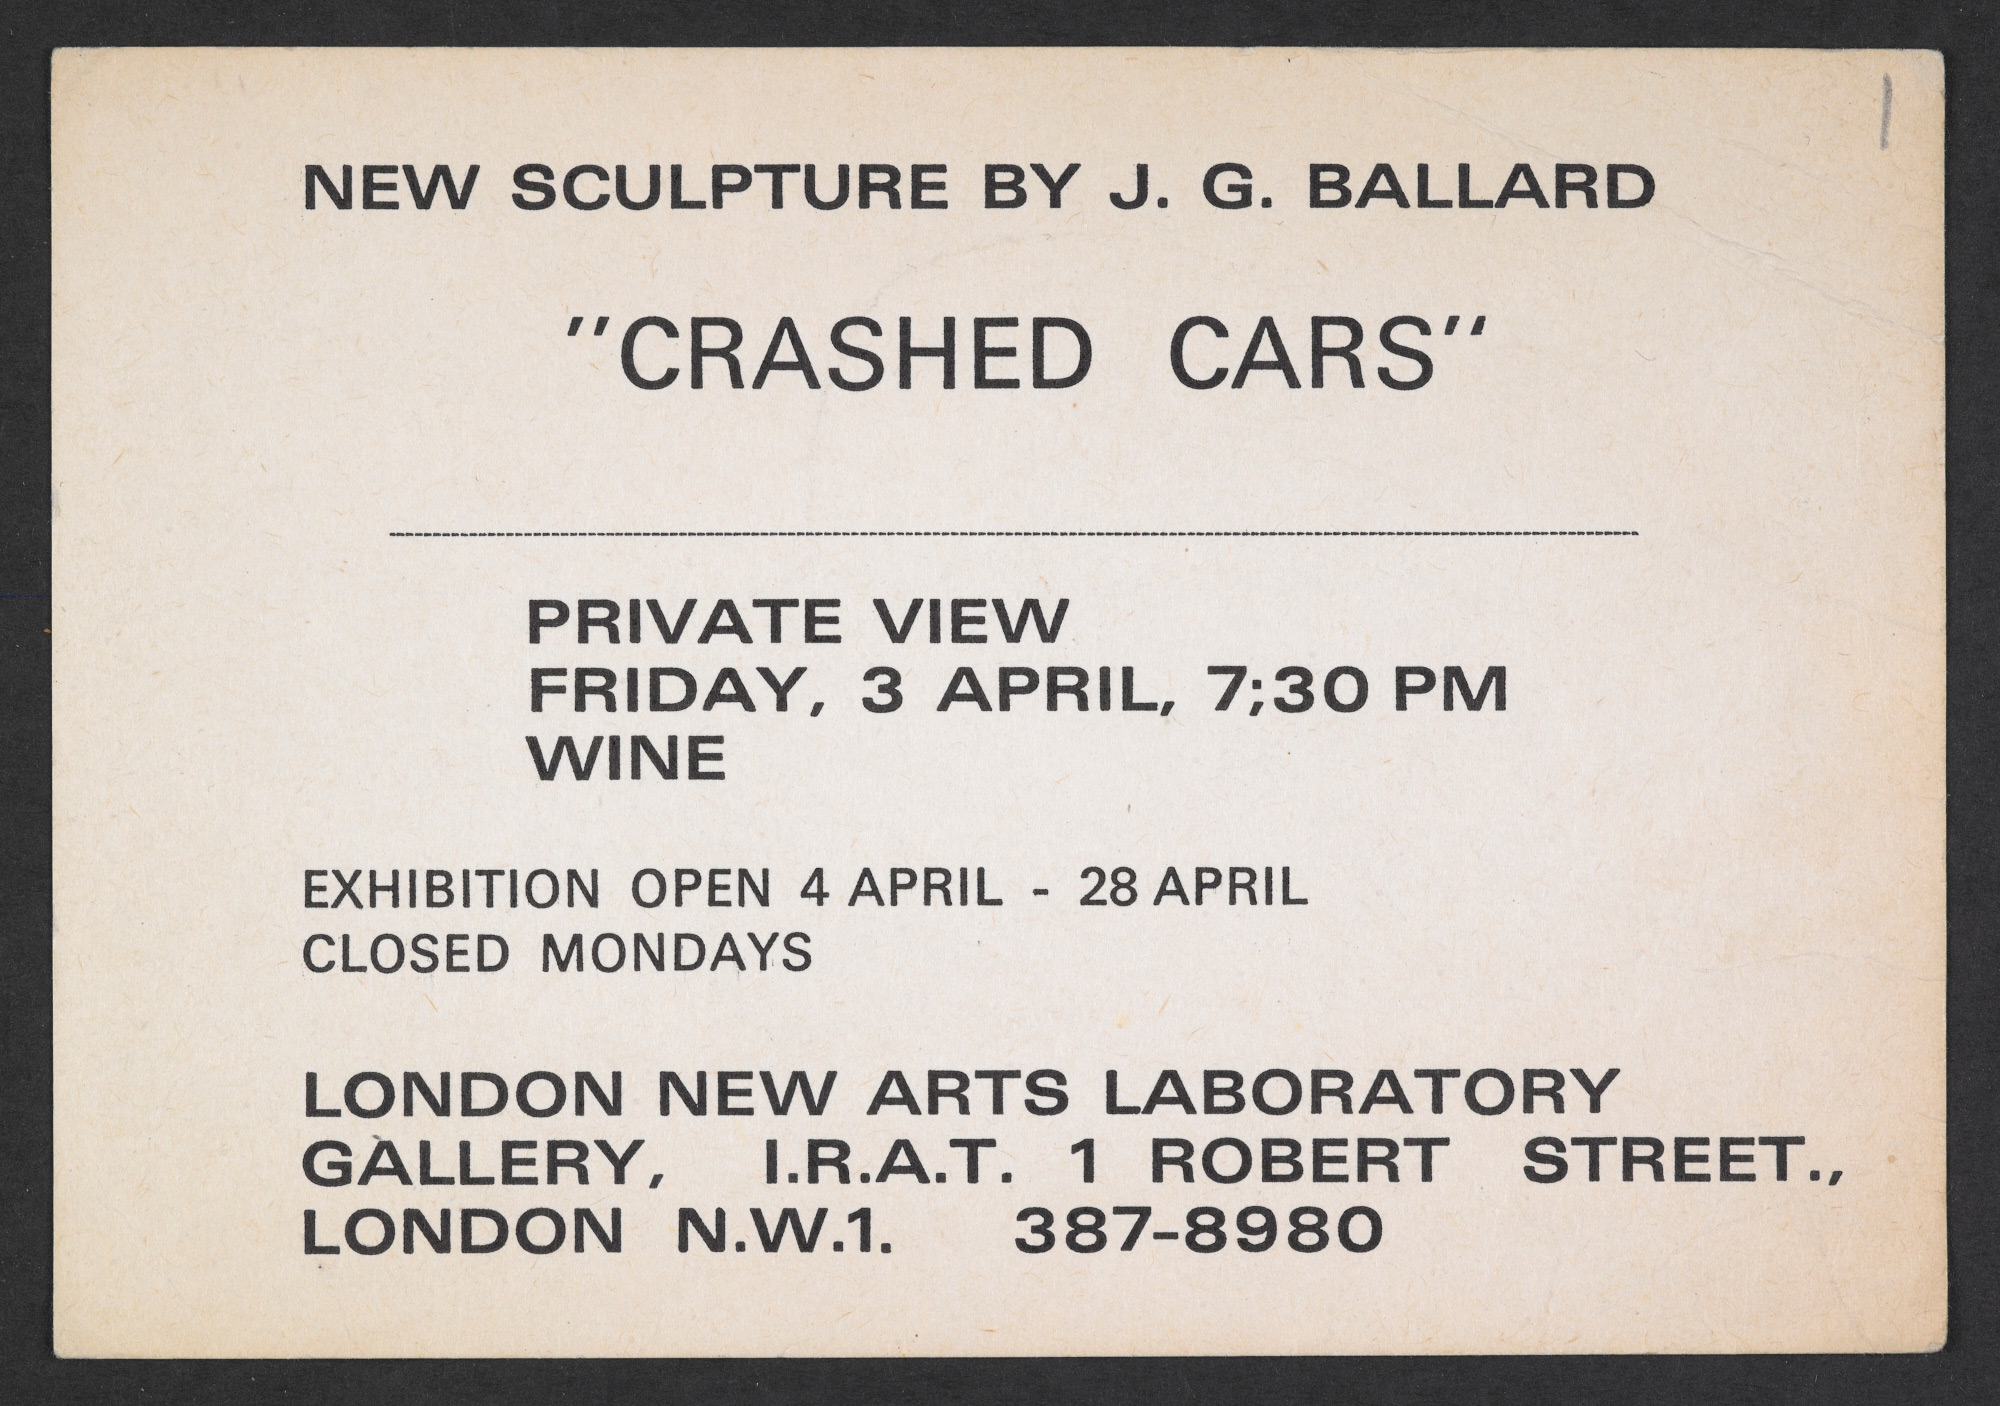 Invitation card to J G Ballard's 'Crashed Cars' exhibition, 3 April 1970